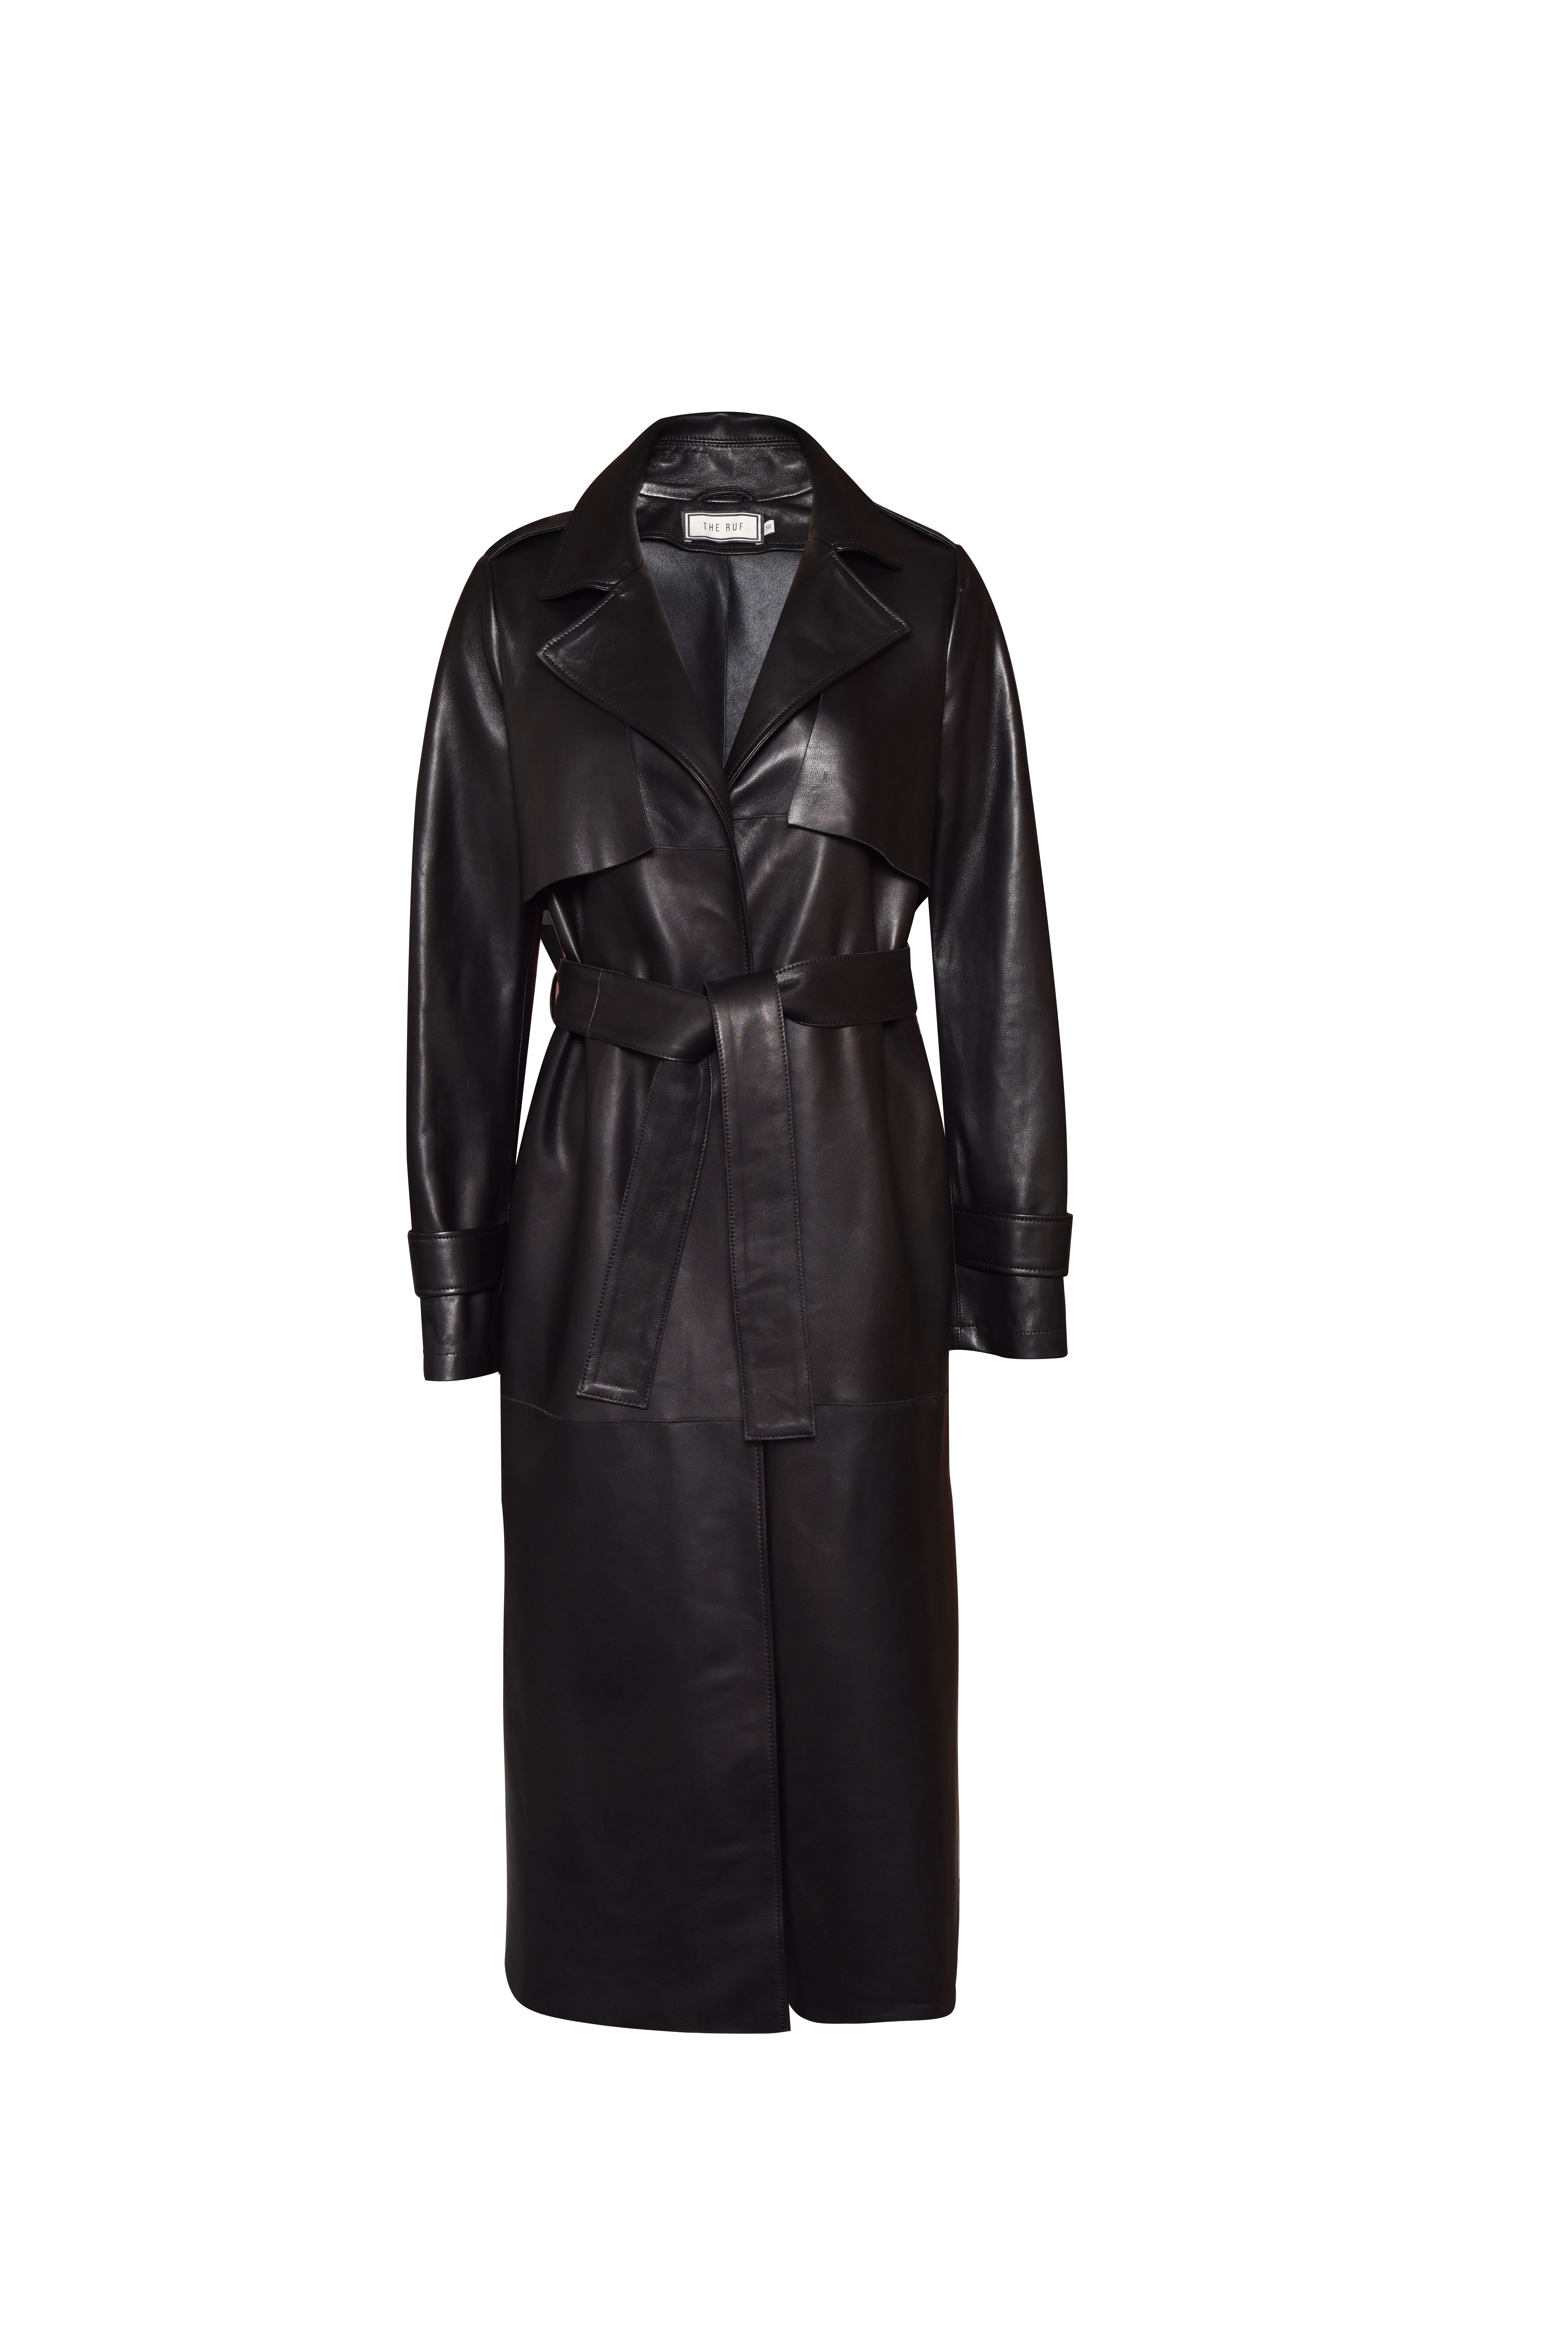 Leather Trenchcoat - Black by The Ruf on curated-crowd.com